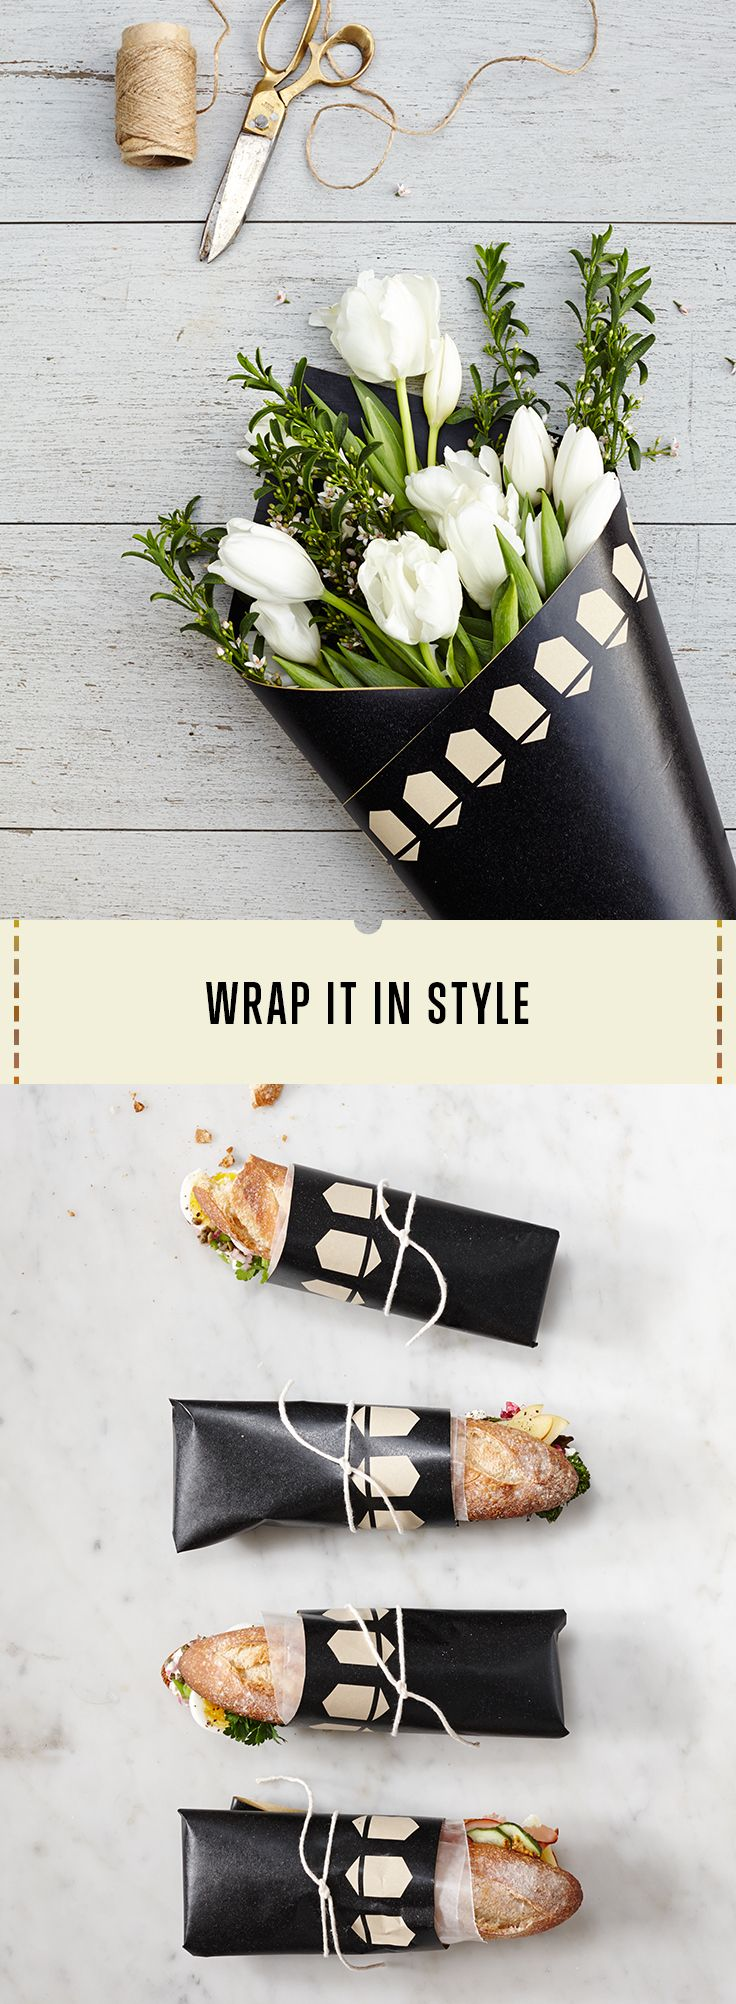 Repurpose your paper table runner to wrap sandwiches and floral bouquets. Unexpectedly beautiful.